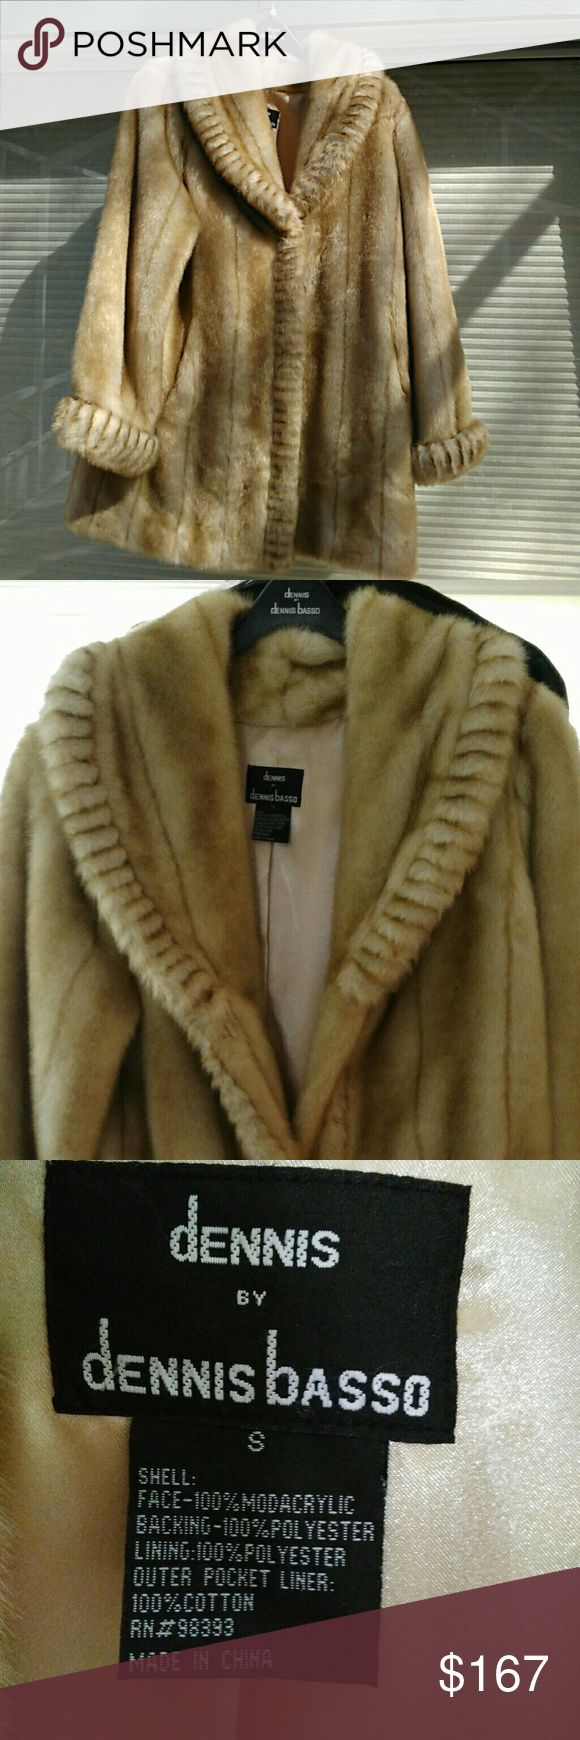 Dennis Basso faux fur with original bag tan cream Brand new with bag Dennis Basso tan/ cream faux fur coat. Size small. Can wear chunky sweaters underneath and still not be tight. Would also fit medium with thinner sweaters and tops. Brand new never worn. Length from shoulder 33 inches. Arm from top of shoulder 26. Not meant to fit tight so loose fit across chest. Buttons up . two outside pockets one inside pocket. Its a gorgeous idea for Valentine's Day gift for the special person in your…